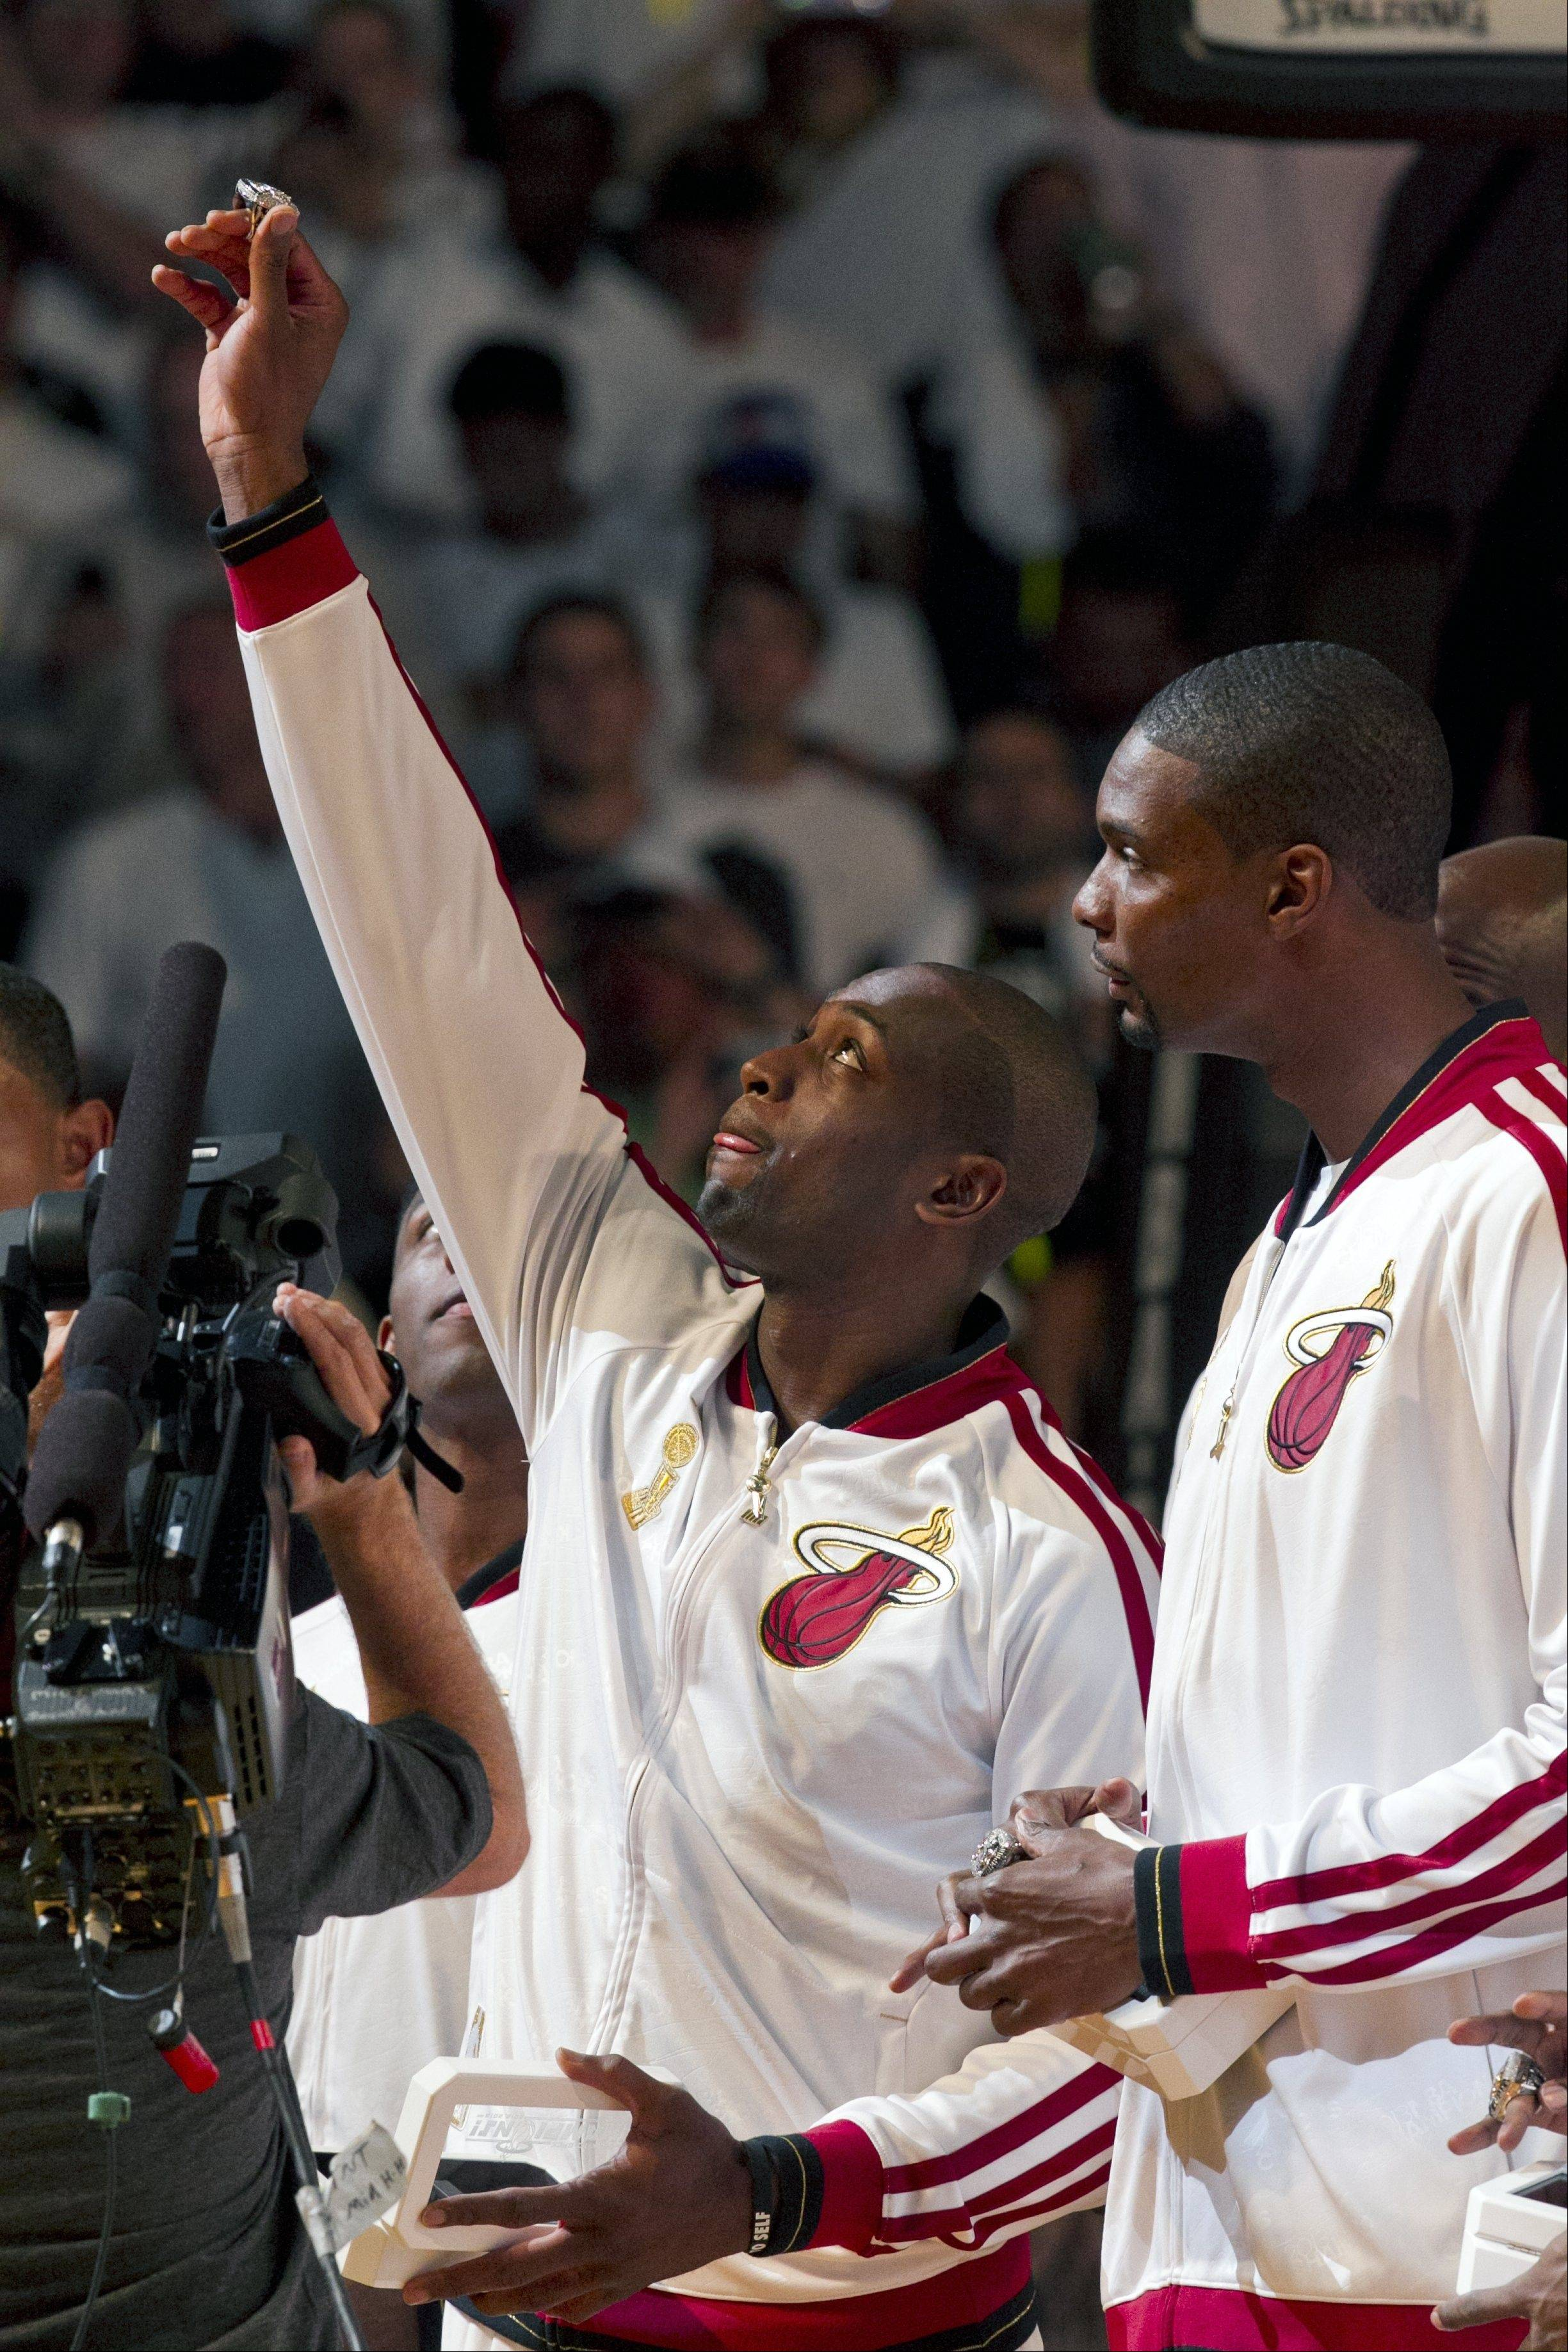 Miami Heat's Dwyane Wade, left, holds up his championship ring as Chris Bosh looks on during a ceremony before their season-opening NBA basketball game against the Chicago Bulls, Tuesday, Oct. 29, 2013, in Miami.